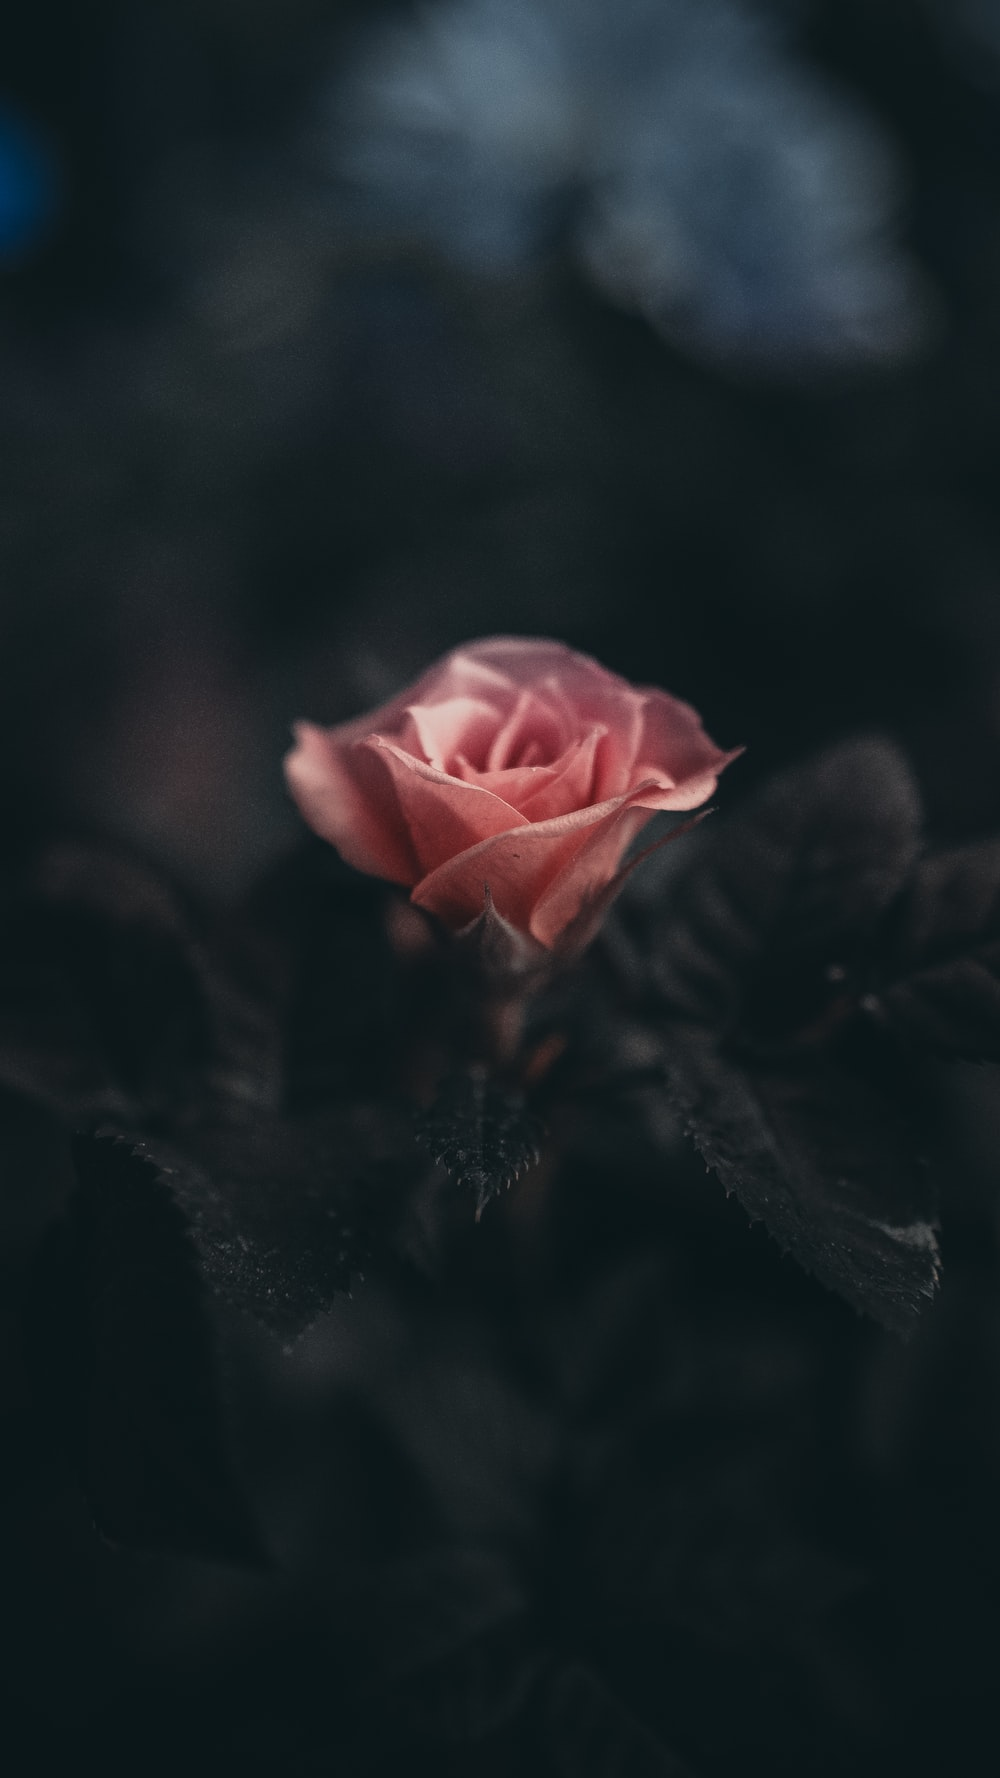 500 Nature Dark Pictures Download Free Images On Unsplash